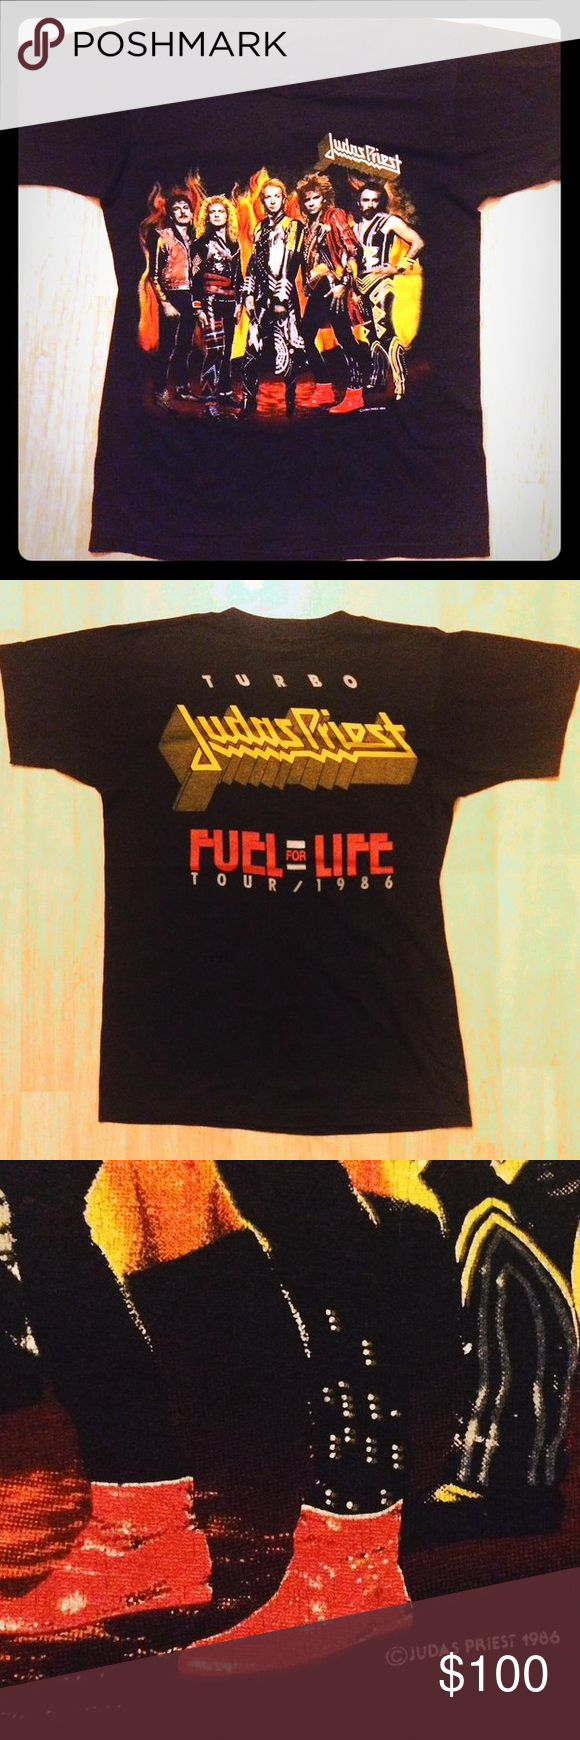 1986 Vintage concert Judas Priest concert t shirt This is an authentic 1986 Judas Priest vintage concert band tee shirt. I got this shirt from my dad who actually attended this concert. The shirt is super cool and feels incredible. It's thin and super soft, exactly what you would expect a 30 year old shirt to feel like. And the graphics are still in amazing condition as you can see in the pictures. It's a size small for men, but that's in vintage sizes, so it fits more like a women's large…